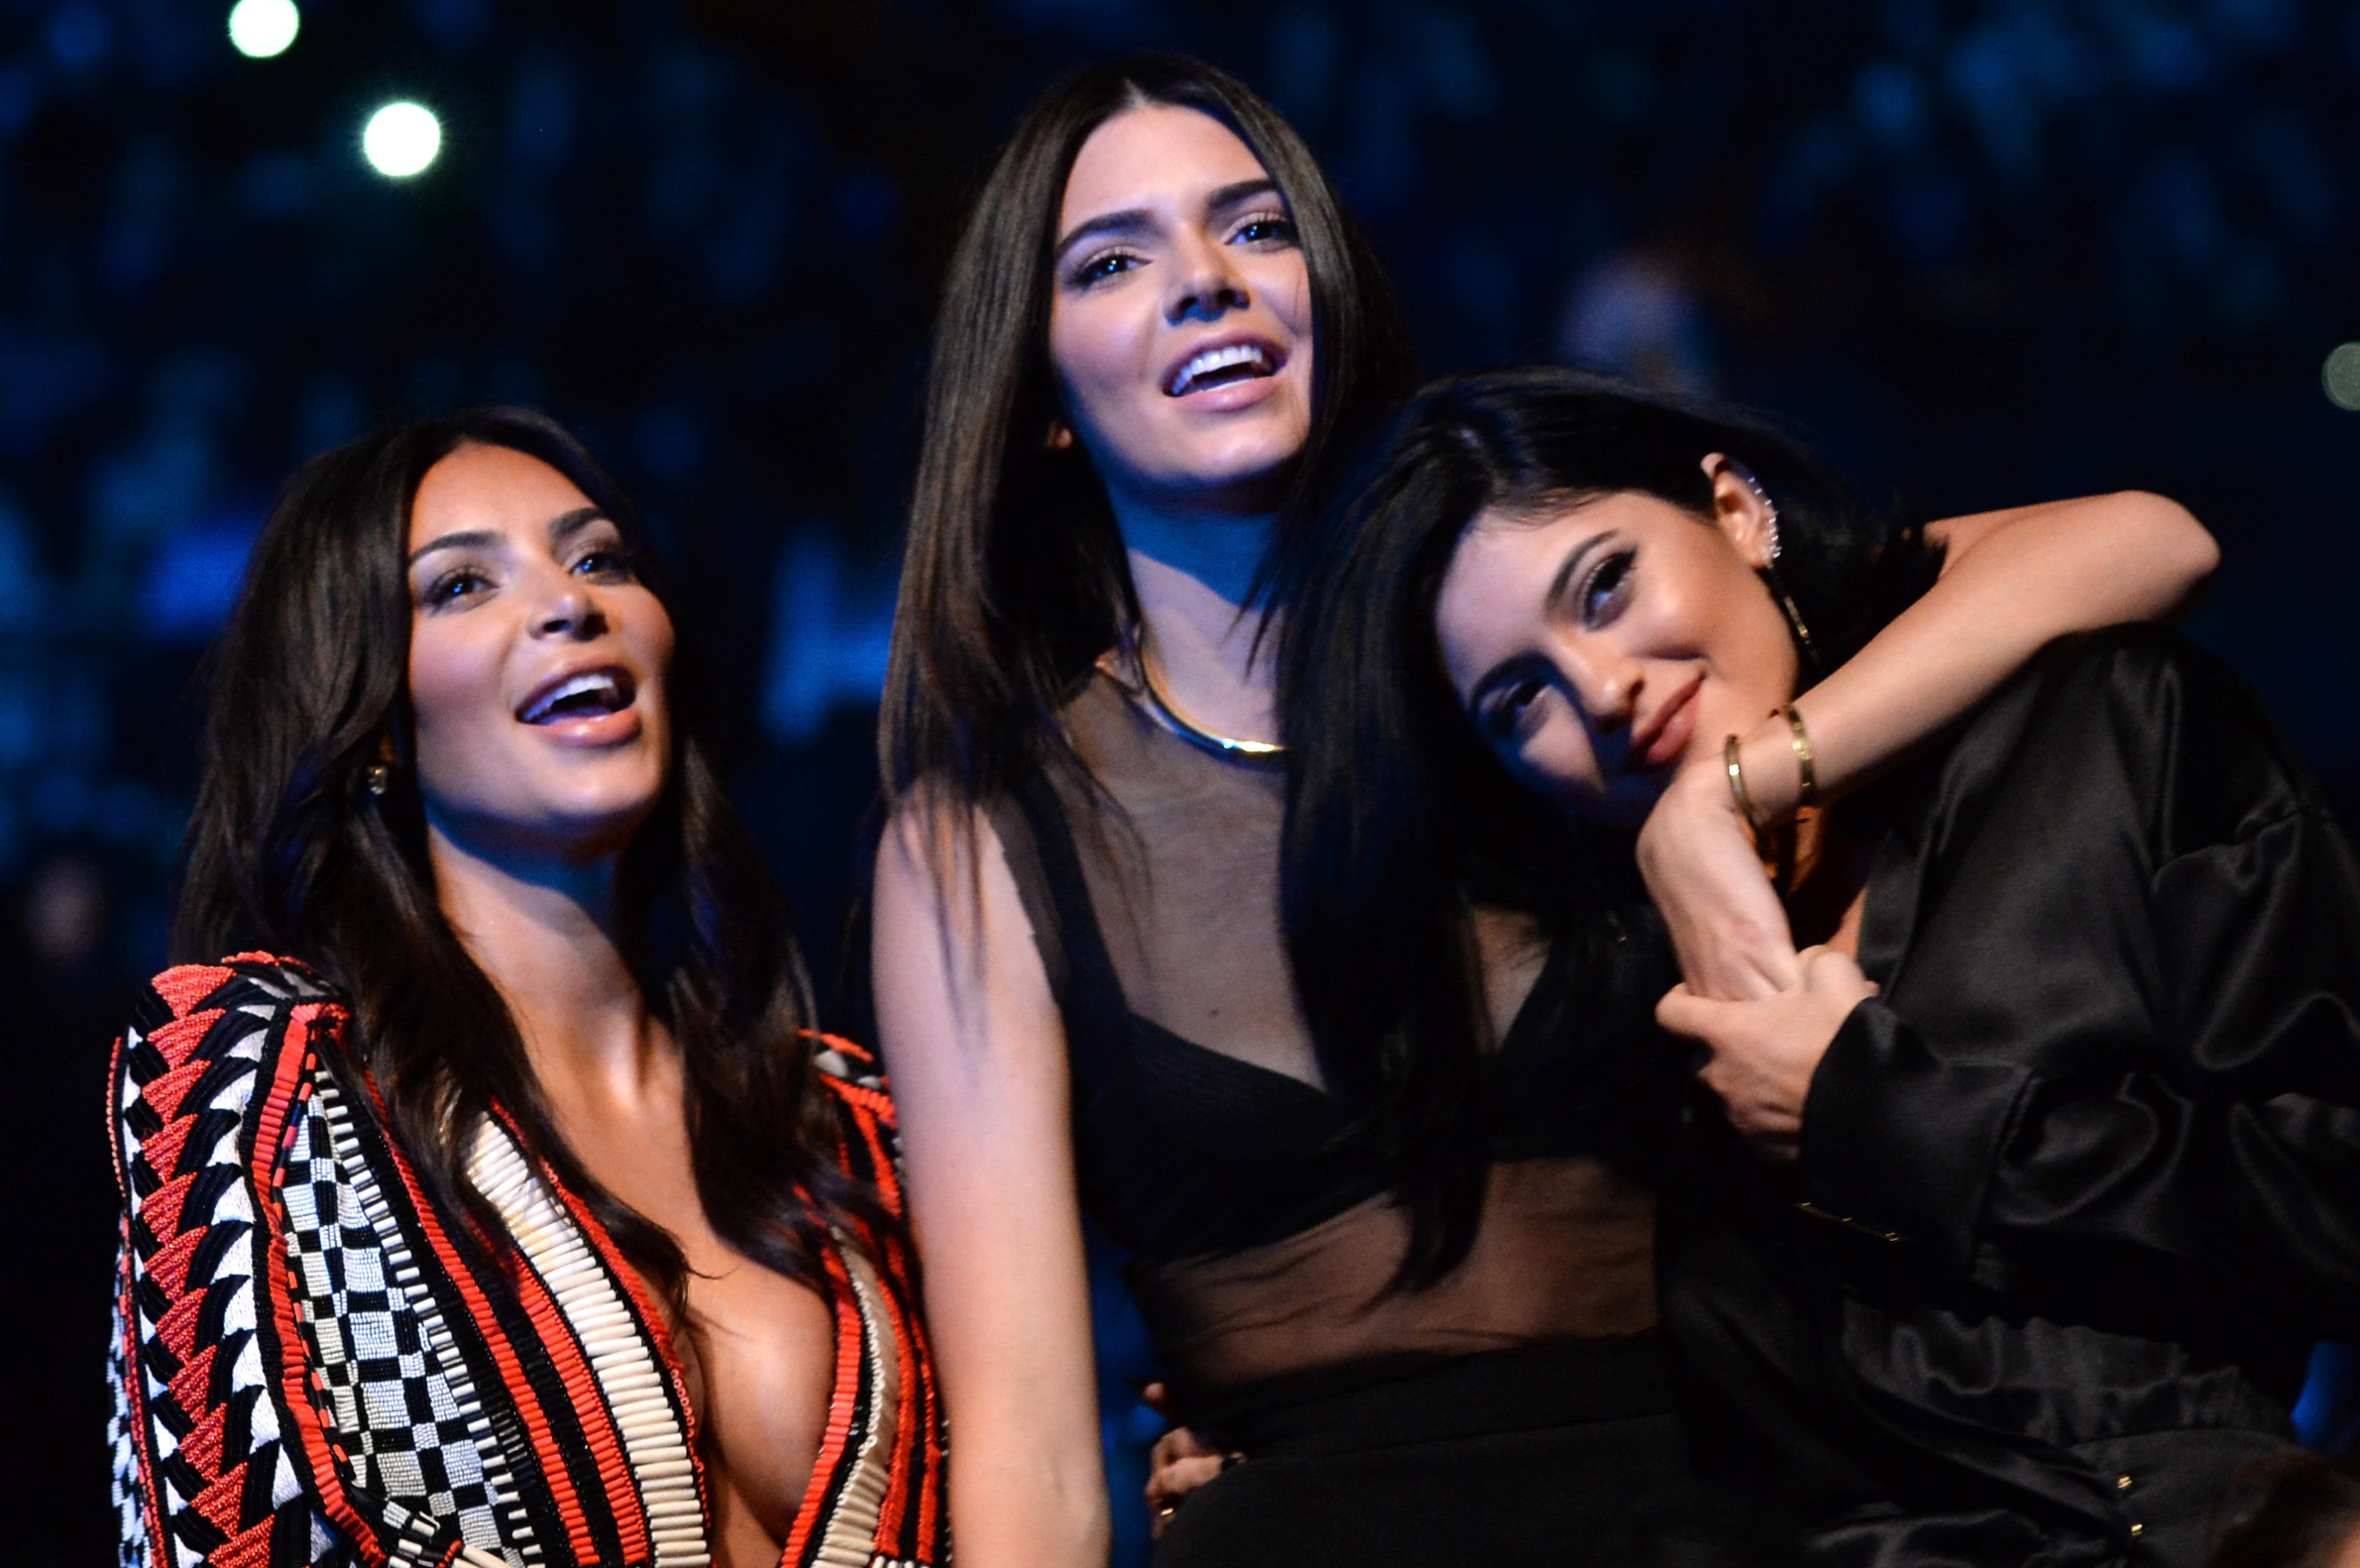 INGLEWOOD, CA - AUGUST 24:  (L-R) TV personalities Kim Kardashian, Kendall Jenner and Kylie Jenner attend the 2014 MTV Video Music Awards at The Forum on August 24, 2014 in Inglewood, California.  (Photo by Jeff Kravitz/MTV1415/FilmMagic)